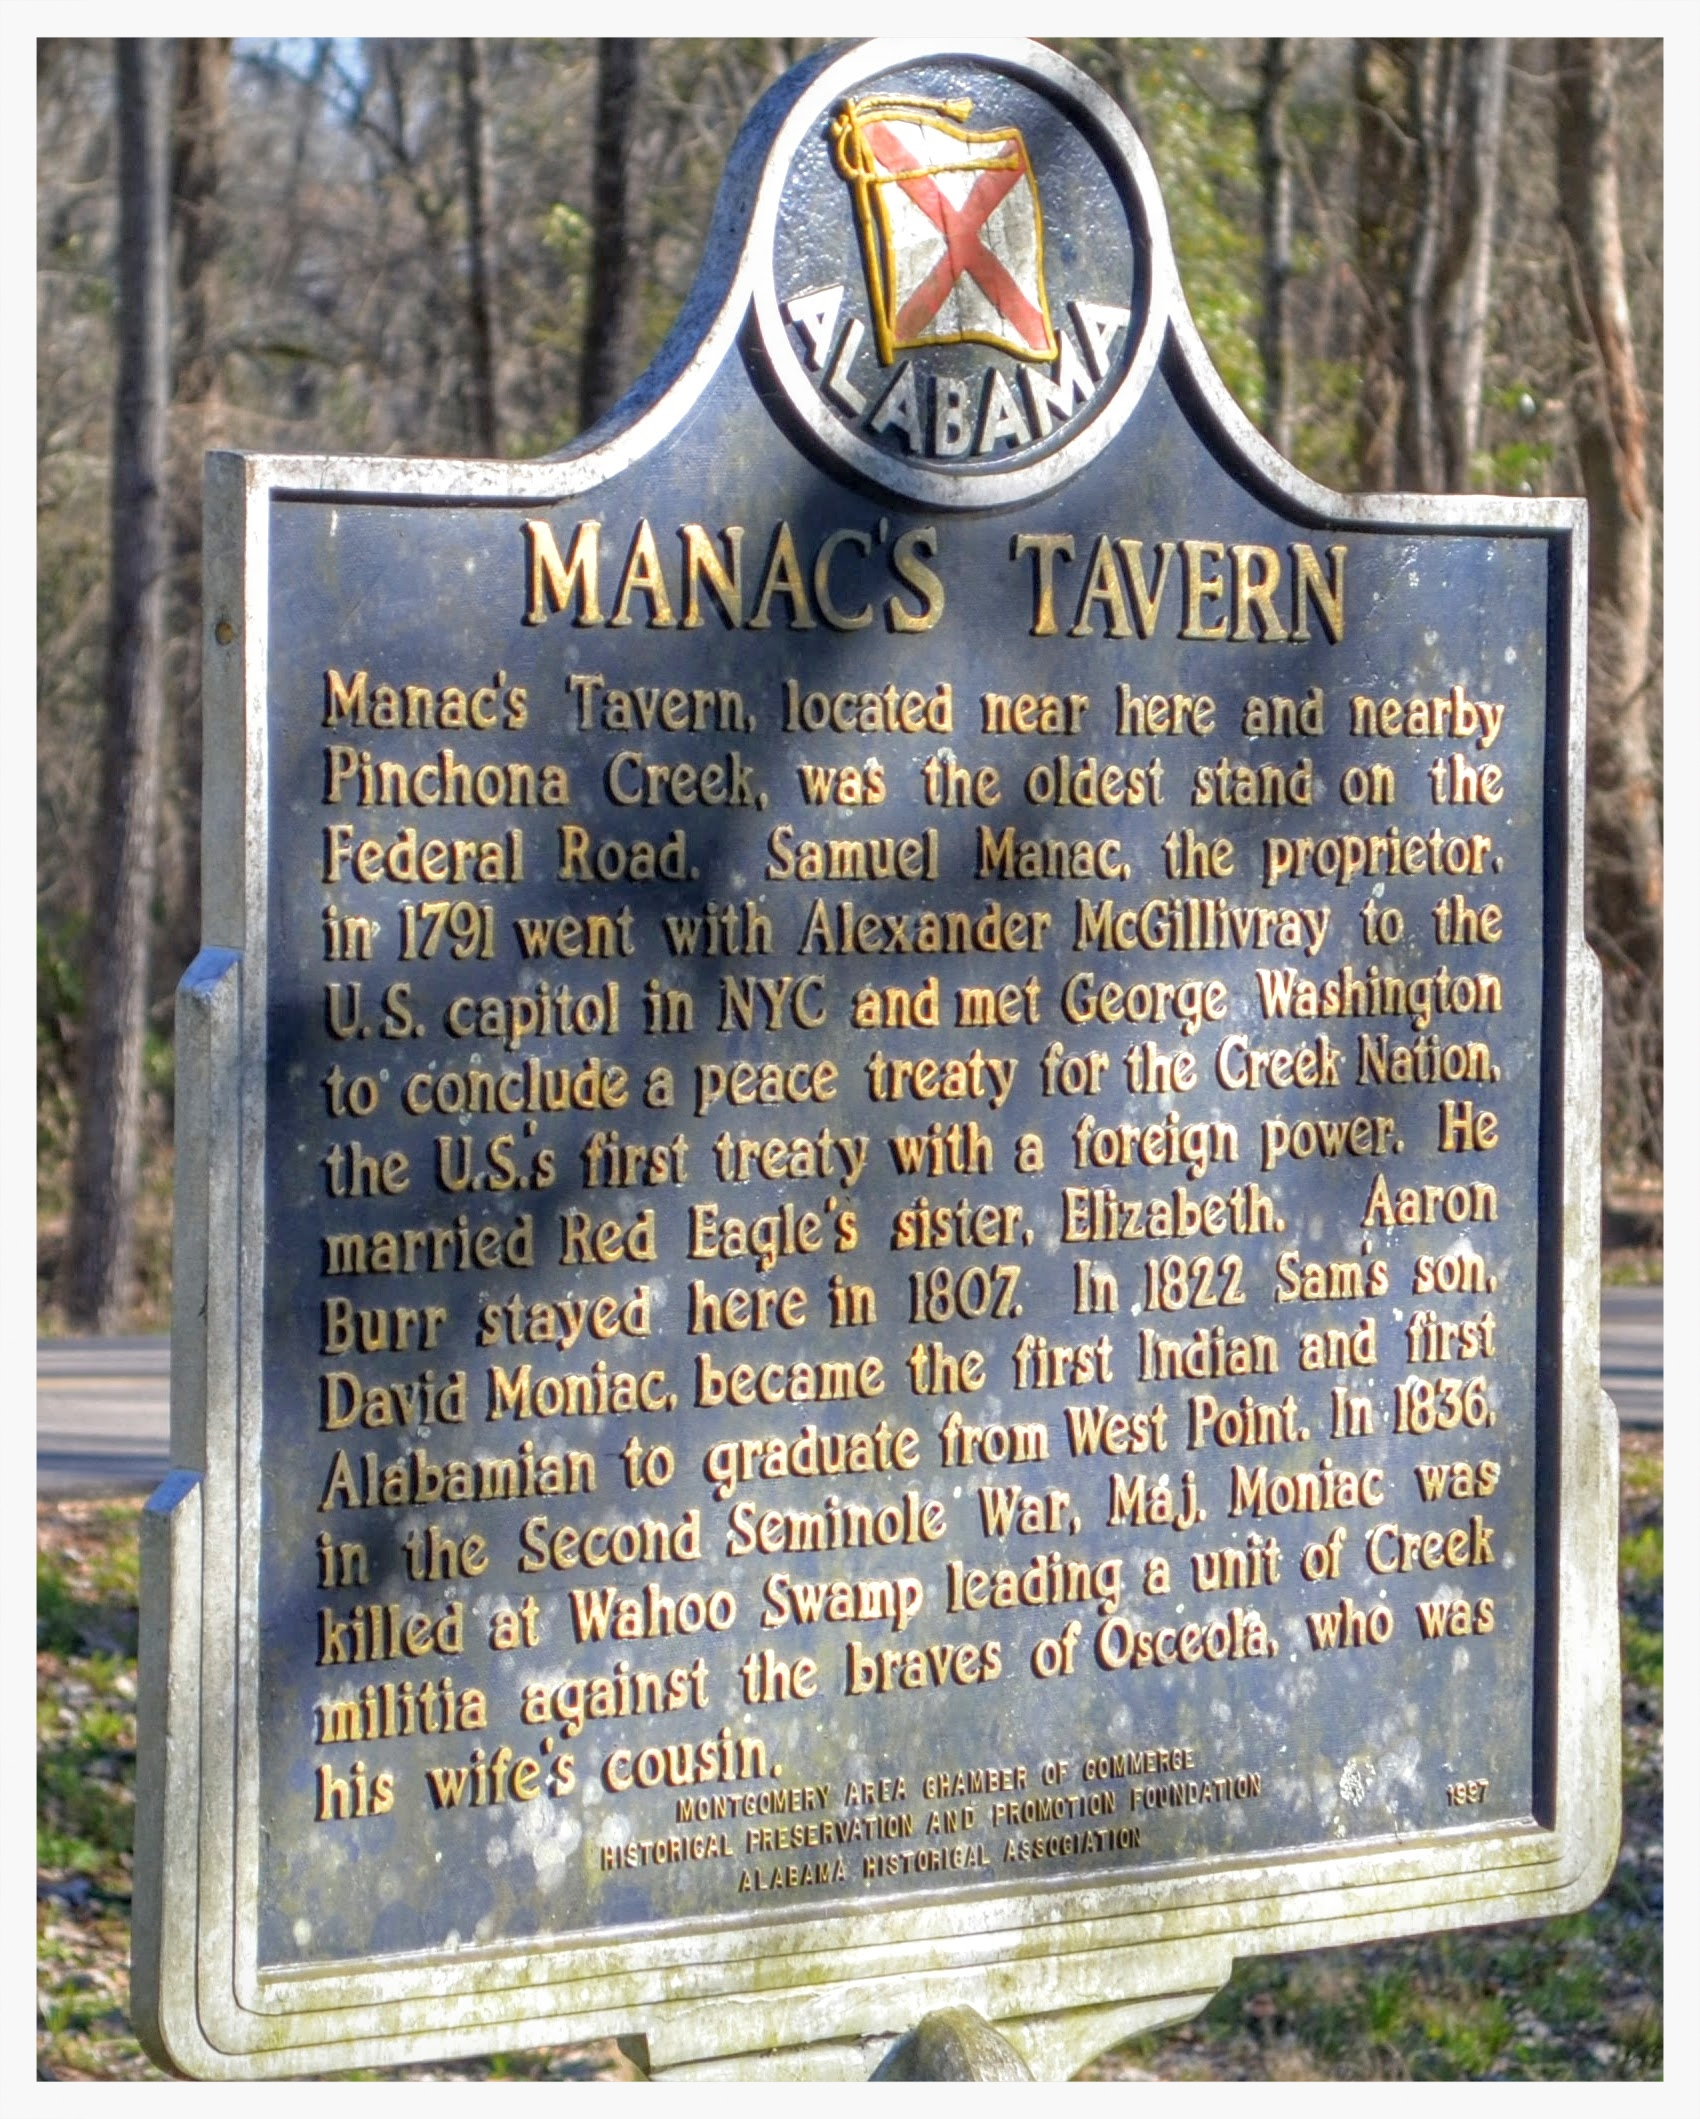 Manac's Tavern historical marker, Hope Hull, Montgomery County, Alabama